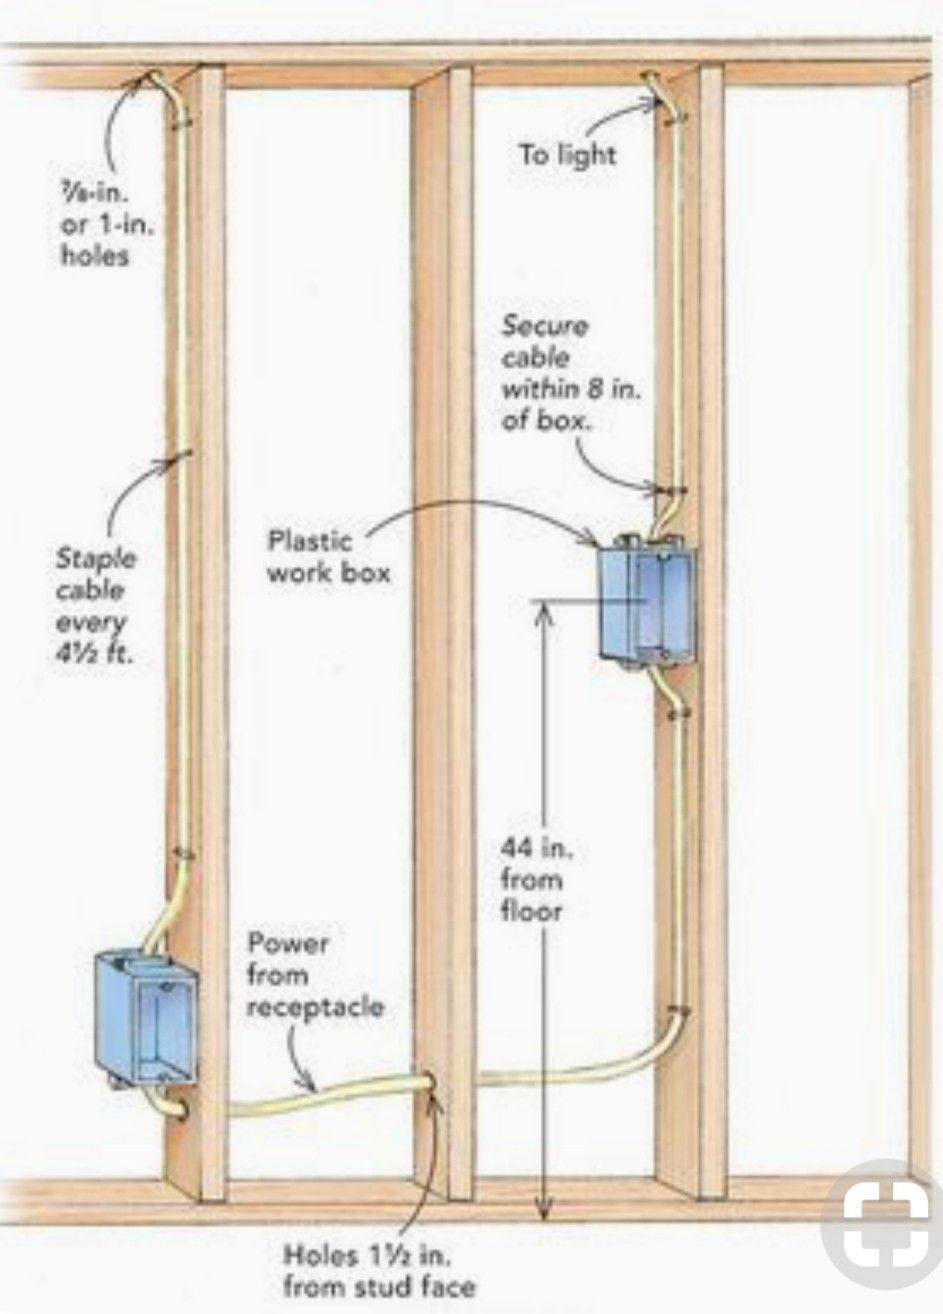 Pin by T.B. Lee Kadoober III on Construction and Woodworking ... Wiring Wall Outlet on